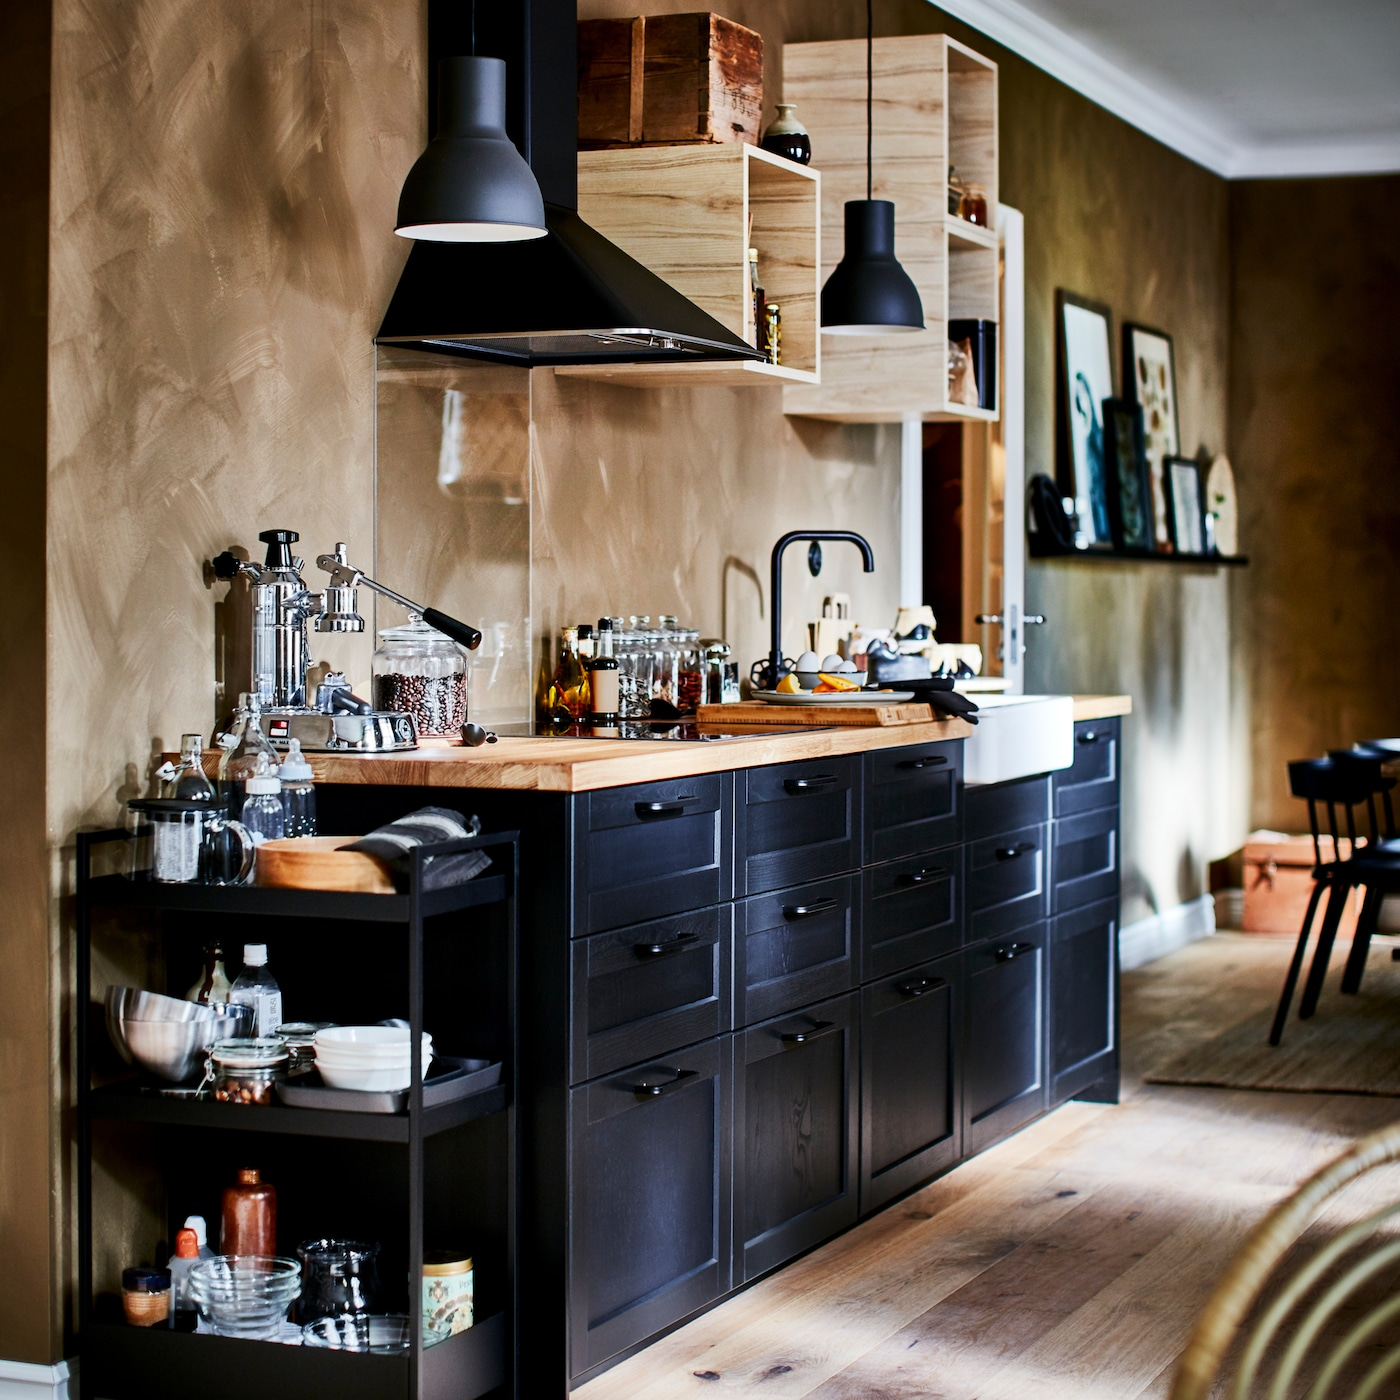 A kitchen with black drawer fronts, a wooden worktop, a black trolley, open wall cabinets and two dark grey pendant lamps.